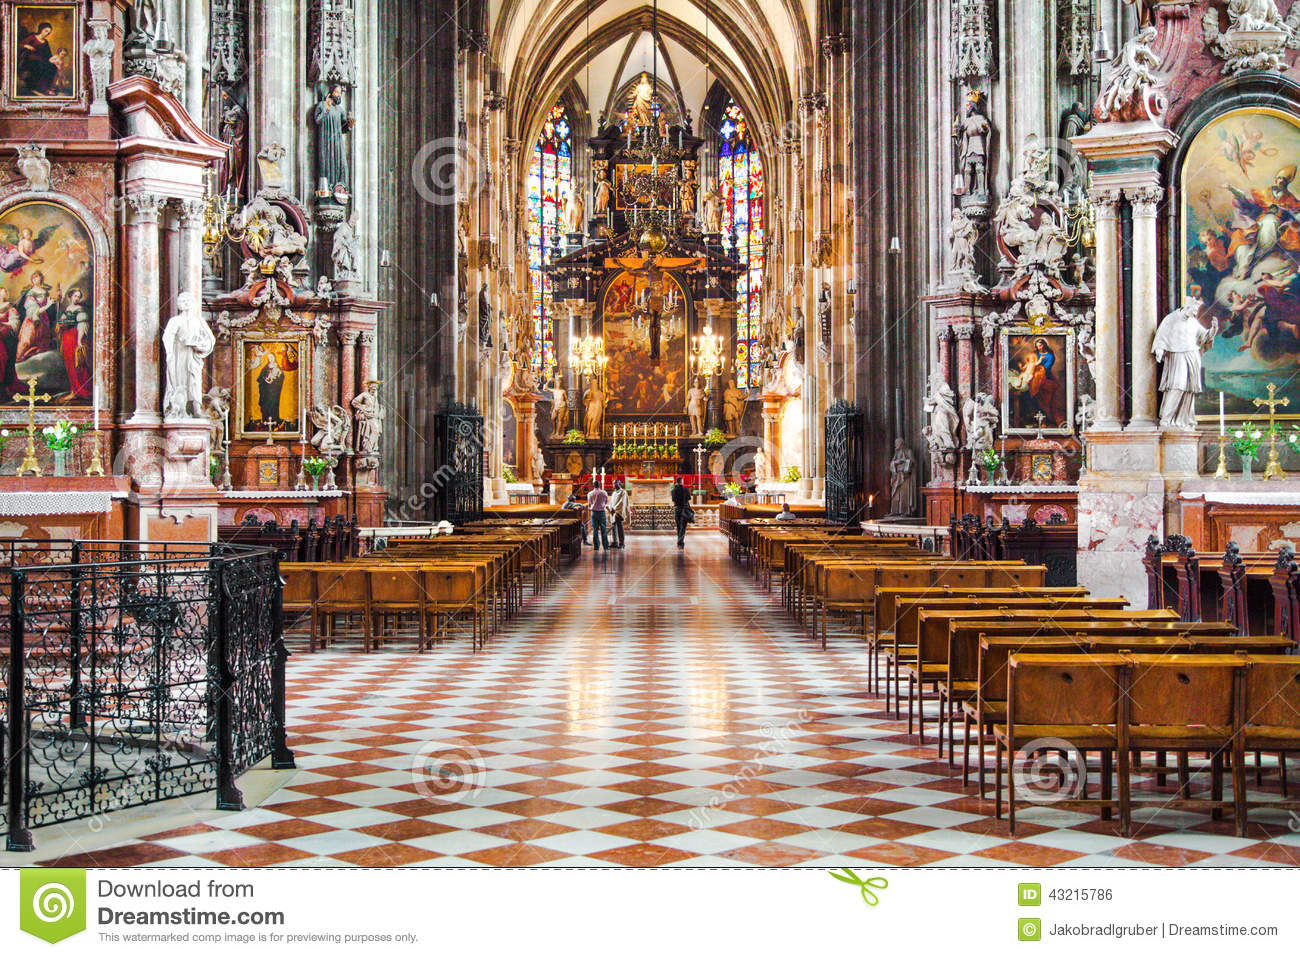 Interior View Of Famous St. Stephen's Cathedral In Vienna, Austria.